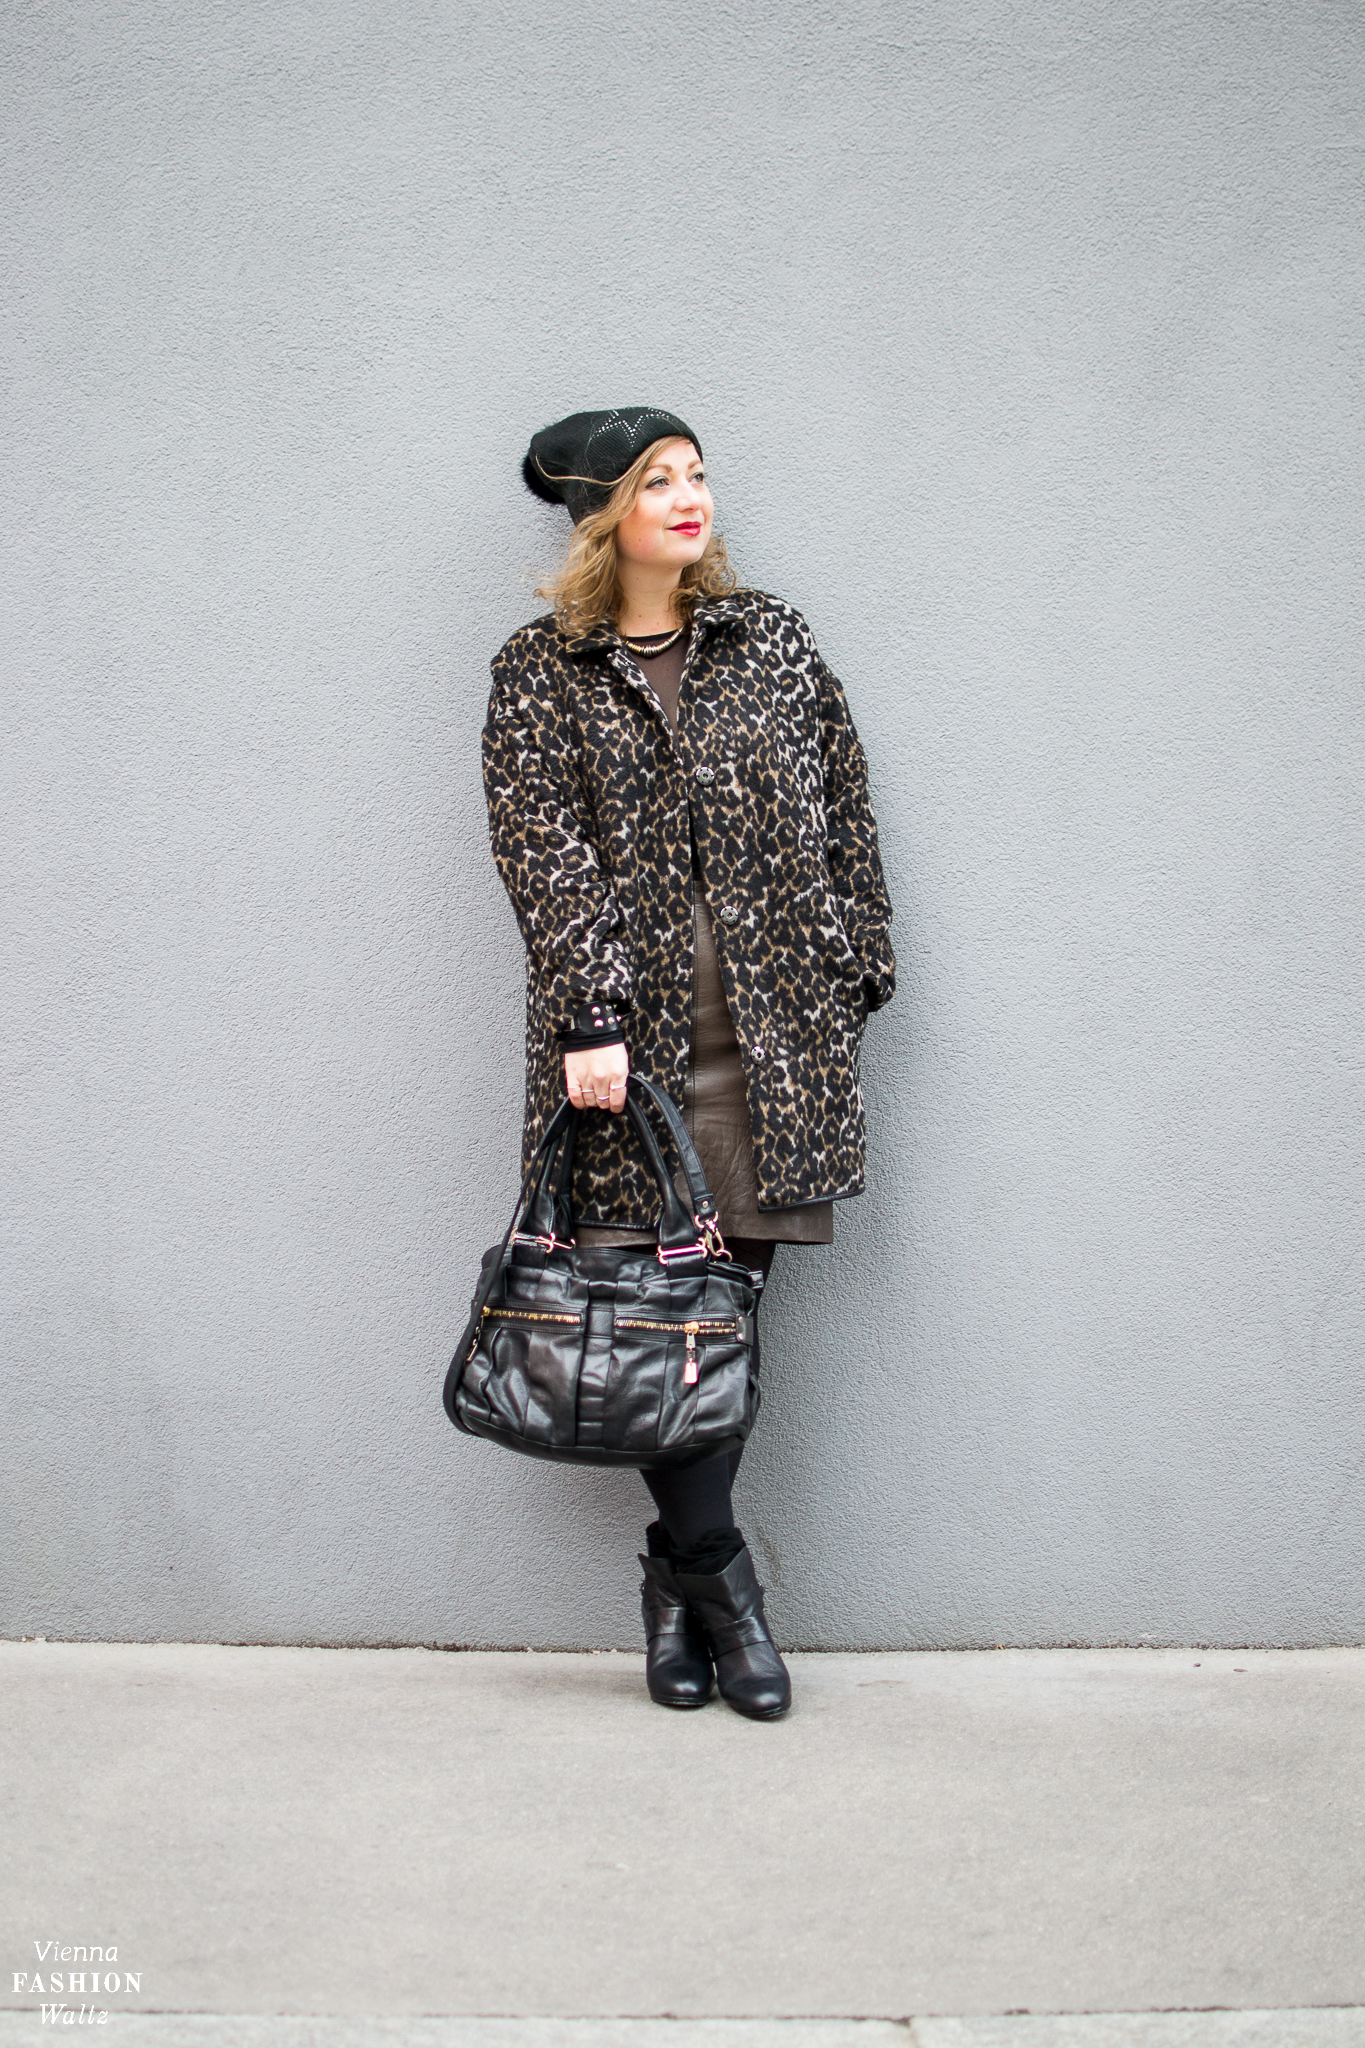 Fashion Trends - How to wear the Leopard Print! Outfit with leopard print Coat and Leather Skirt